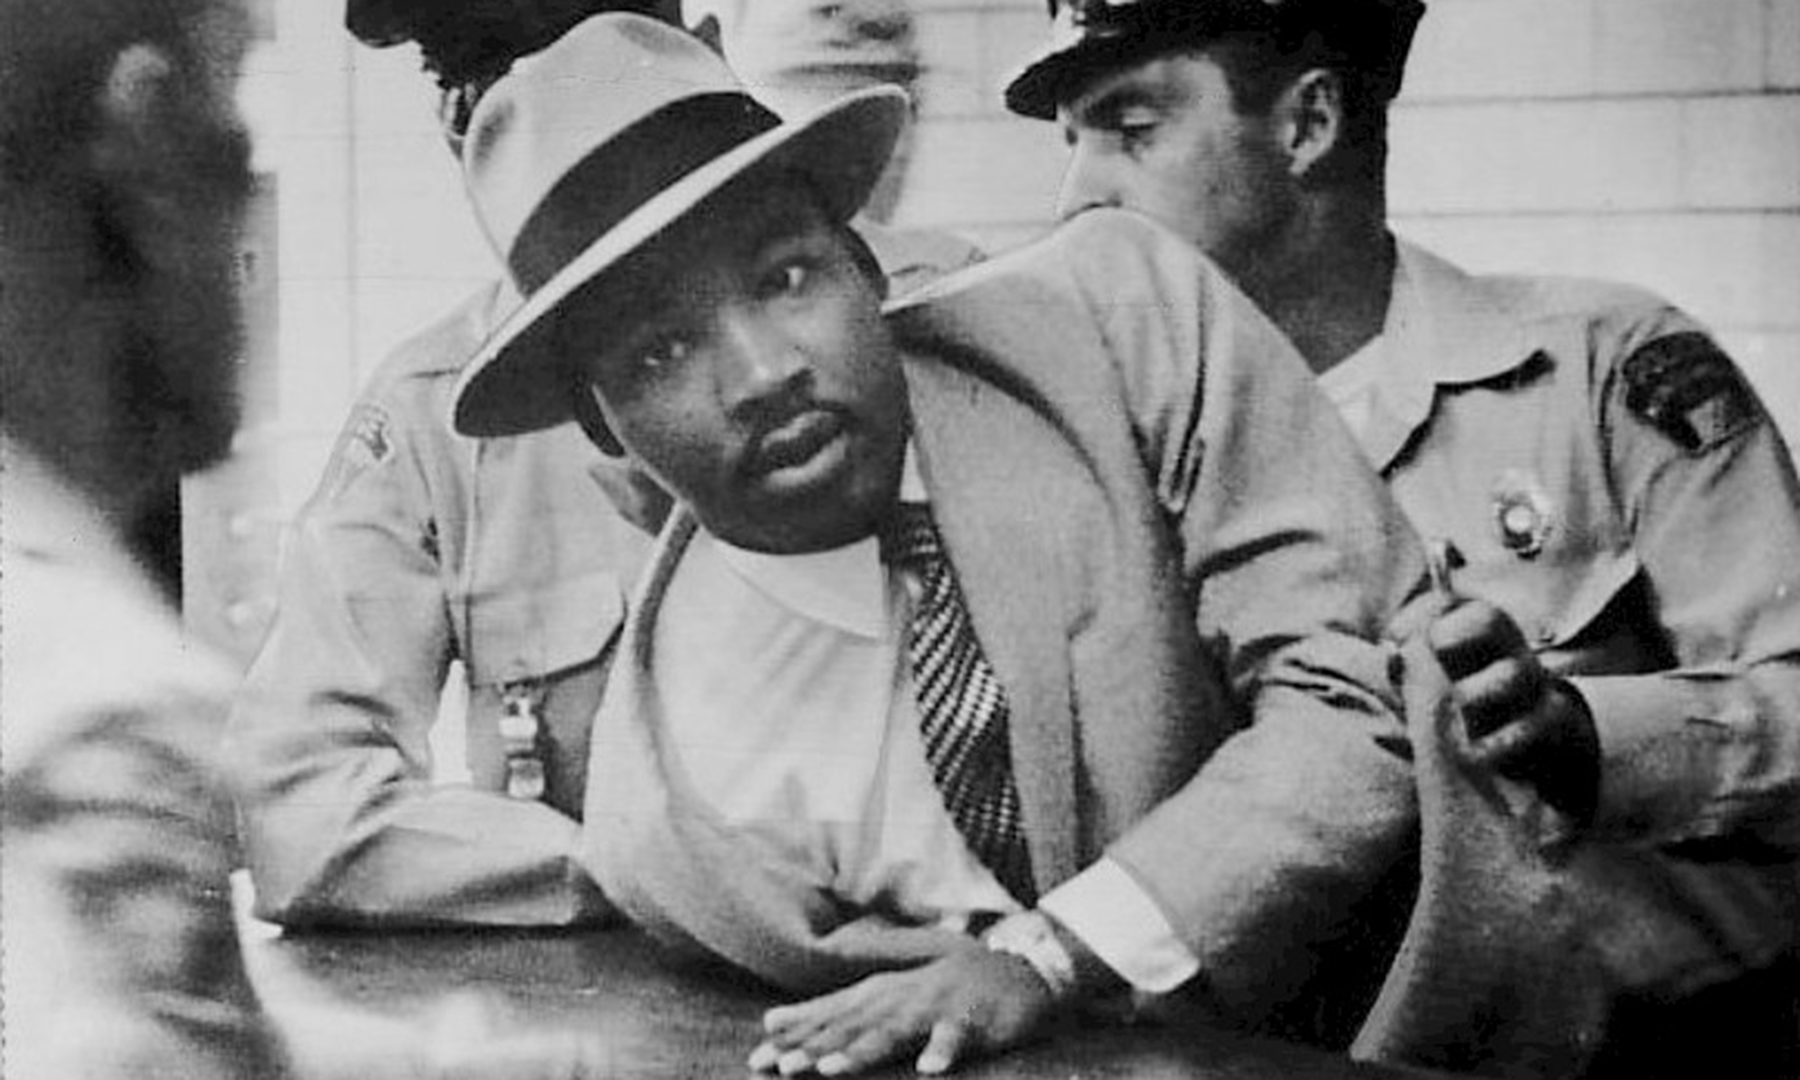 Dr. Martin Luther King Jr., Civil Rights Movement, Arrest, MLK, Police, Activism